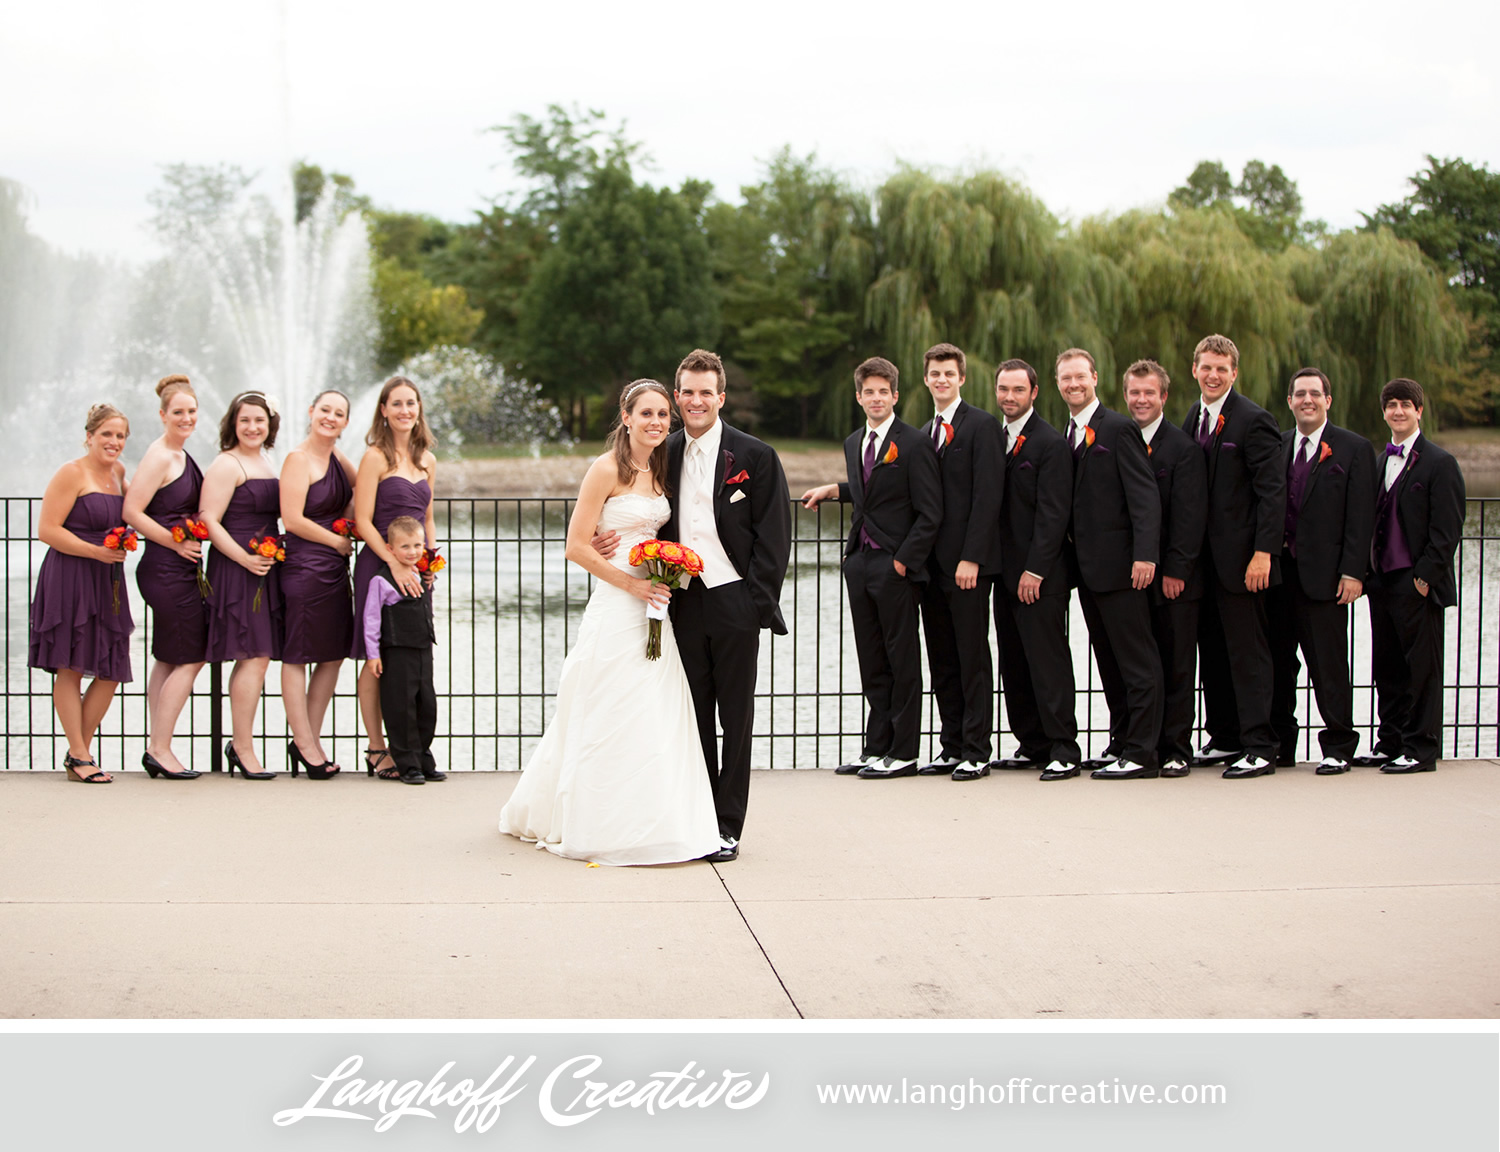 PlainfieldWedding-2013-LanghoffCreative-MattErin-21-photo.jpg